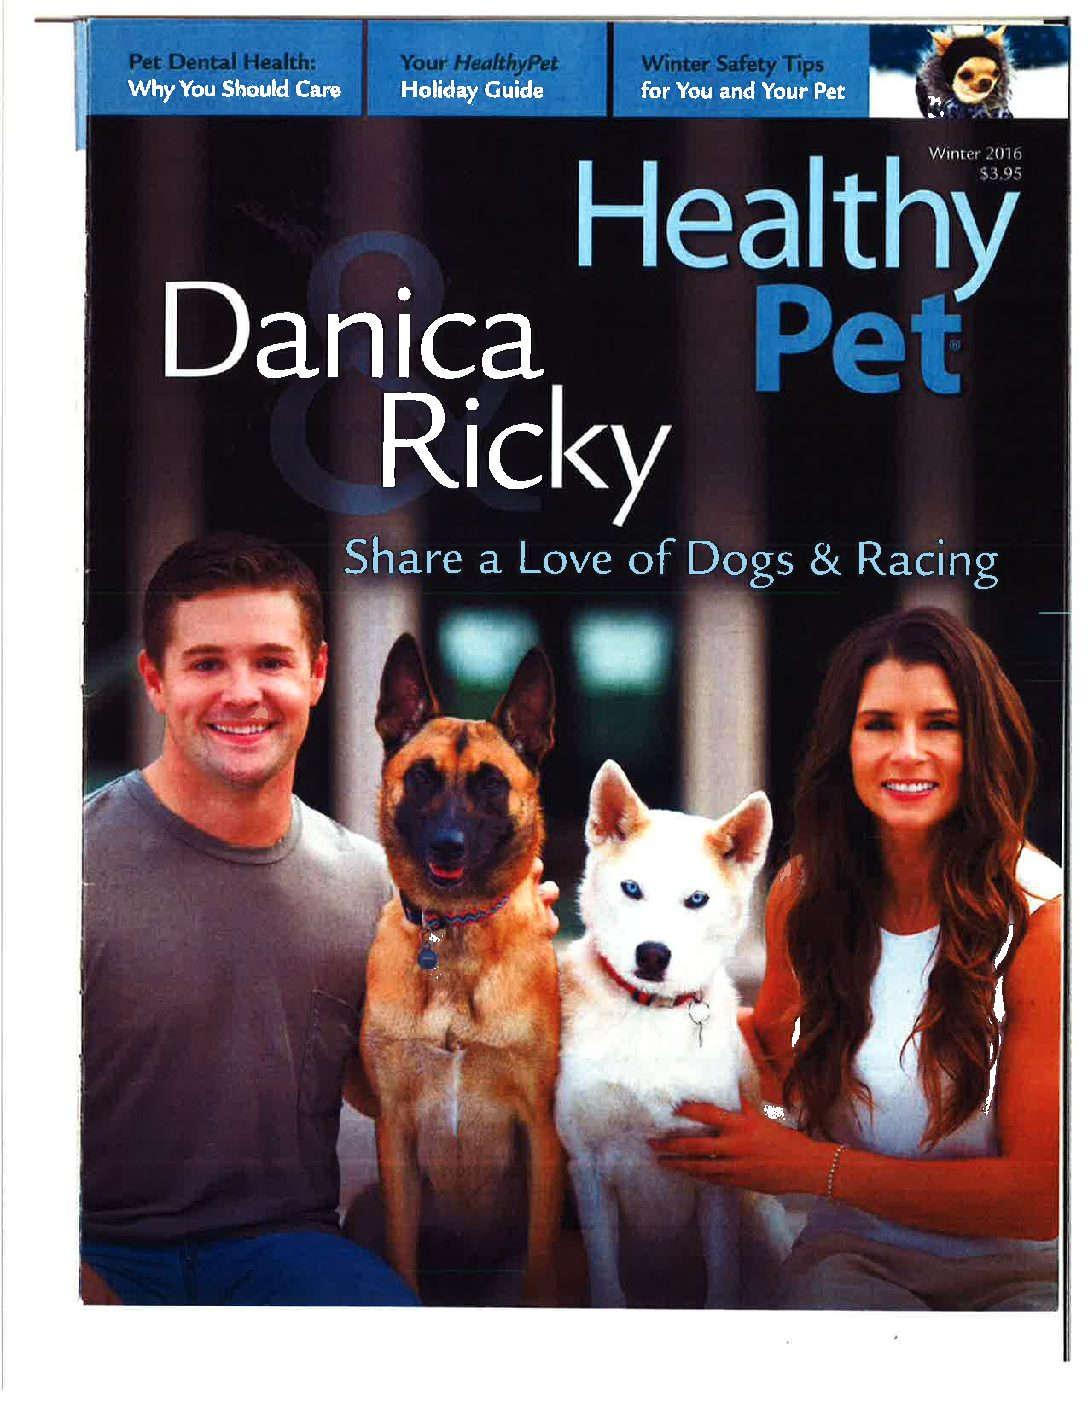 HealthyPet_Winter2016_DanicaPatrick_RickyStenhouse_DogsRacing